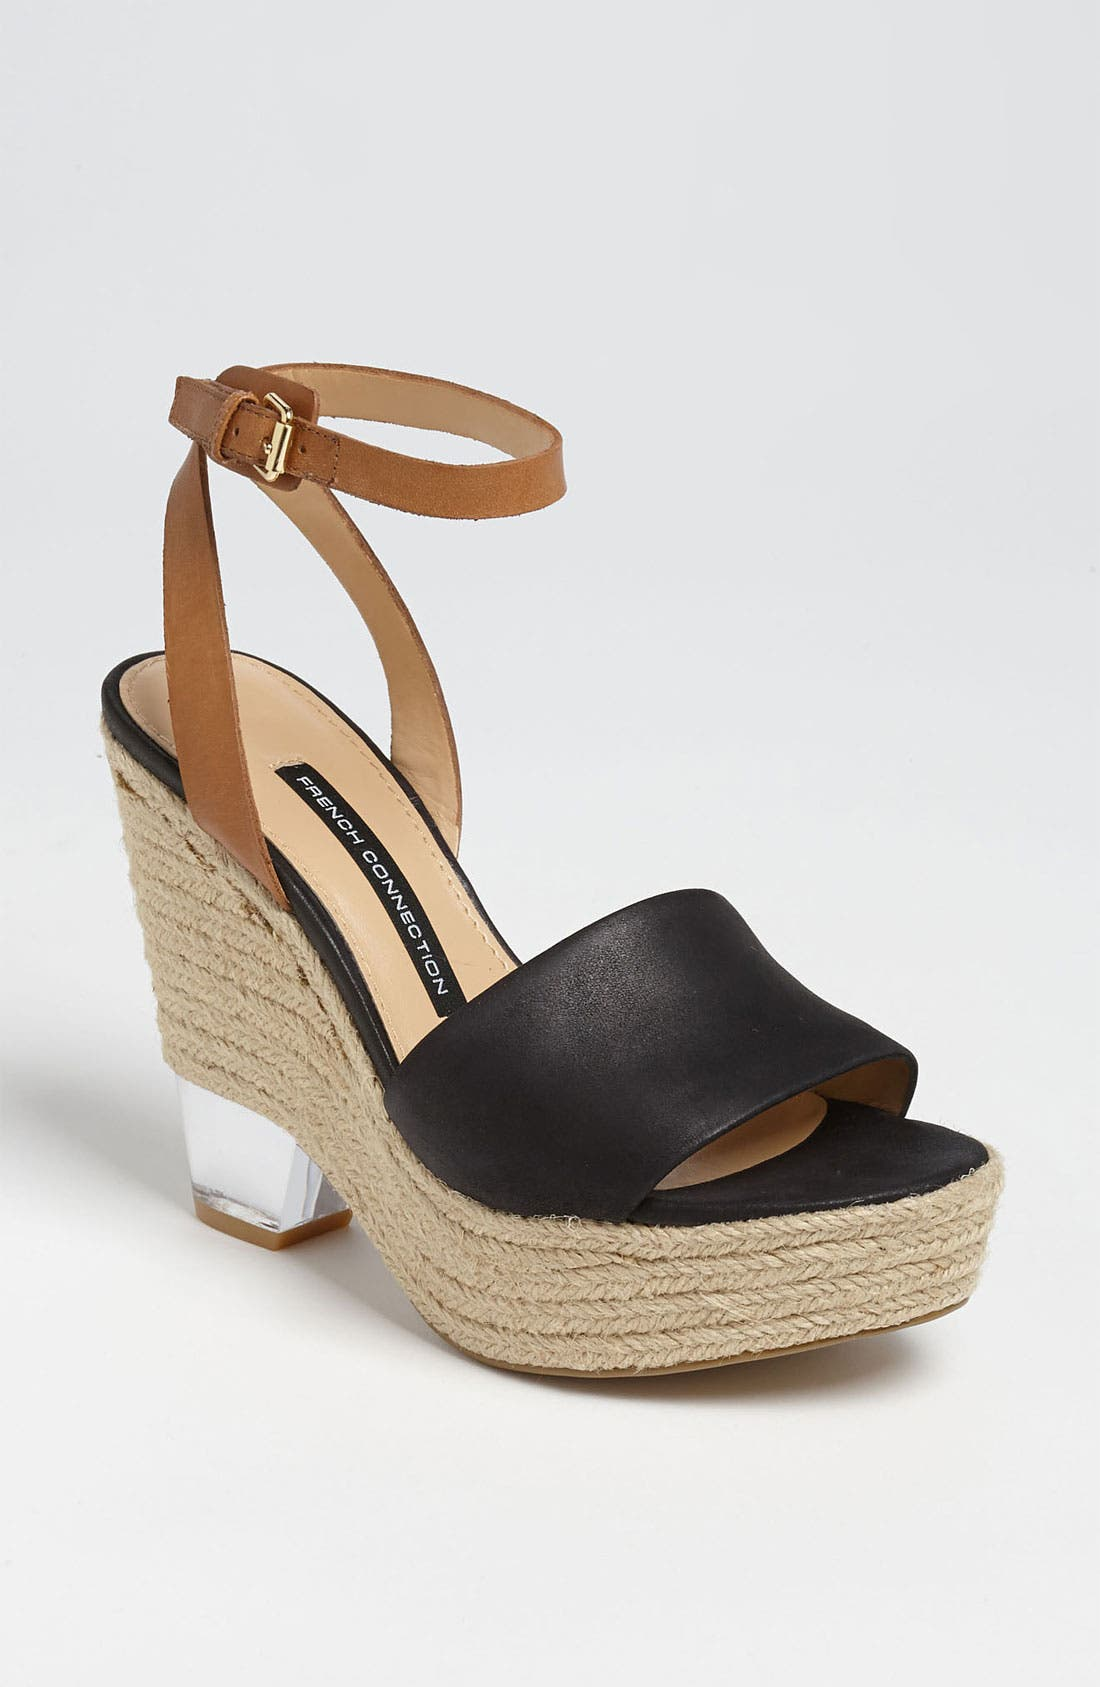 Alternate Image 1 Selected - French Connection 'Abby' Sandal